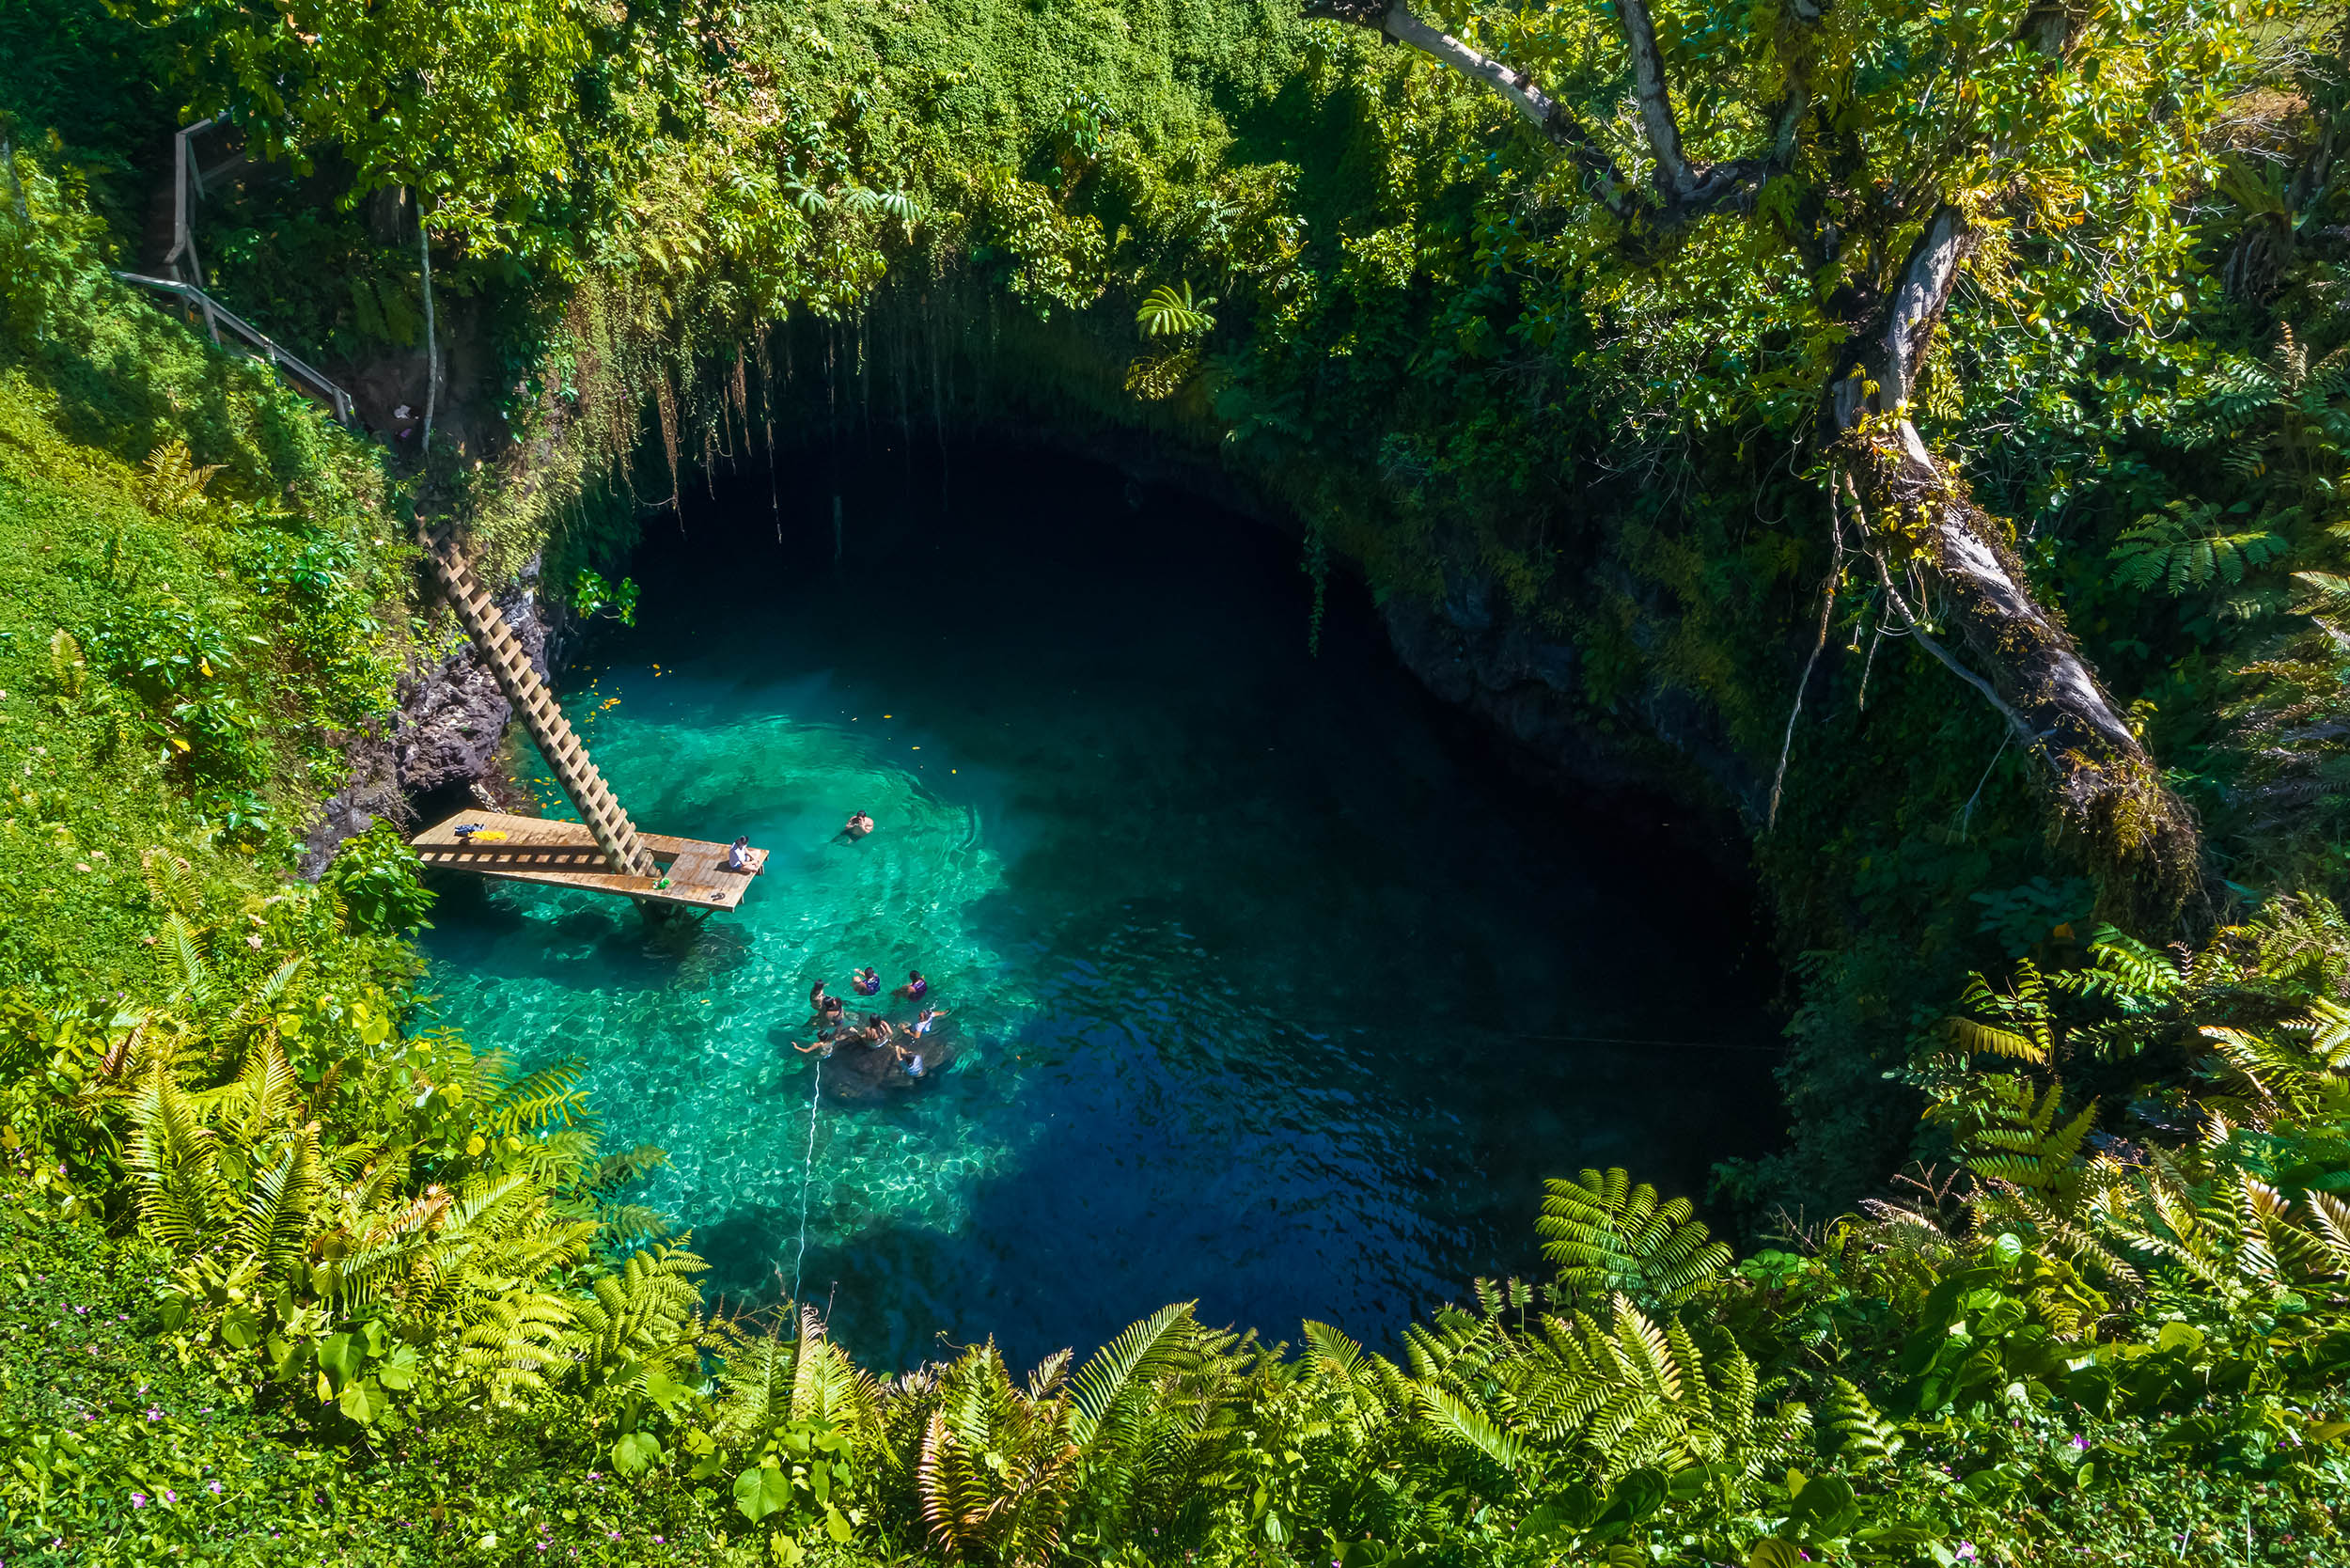 A verdant, deep water hole with brilliant blue water, a step ladder leading down it to a platform and a few people swimming in the water, Samoa